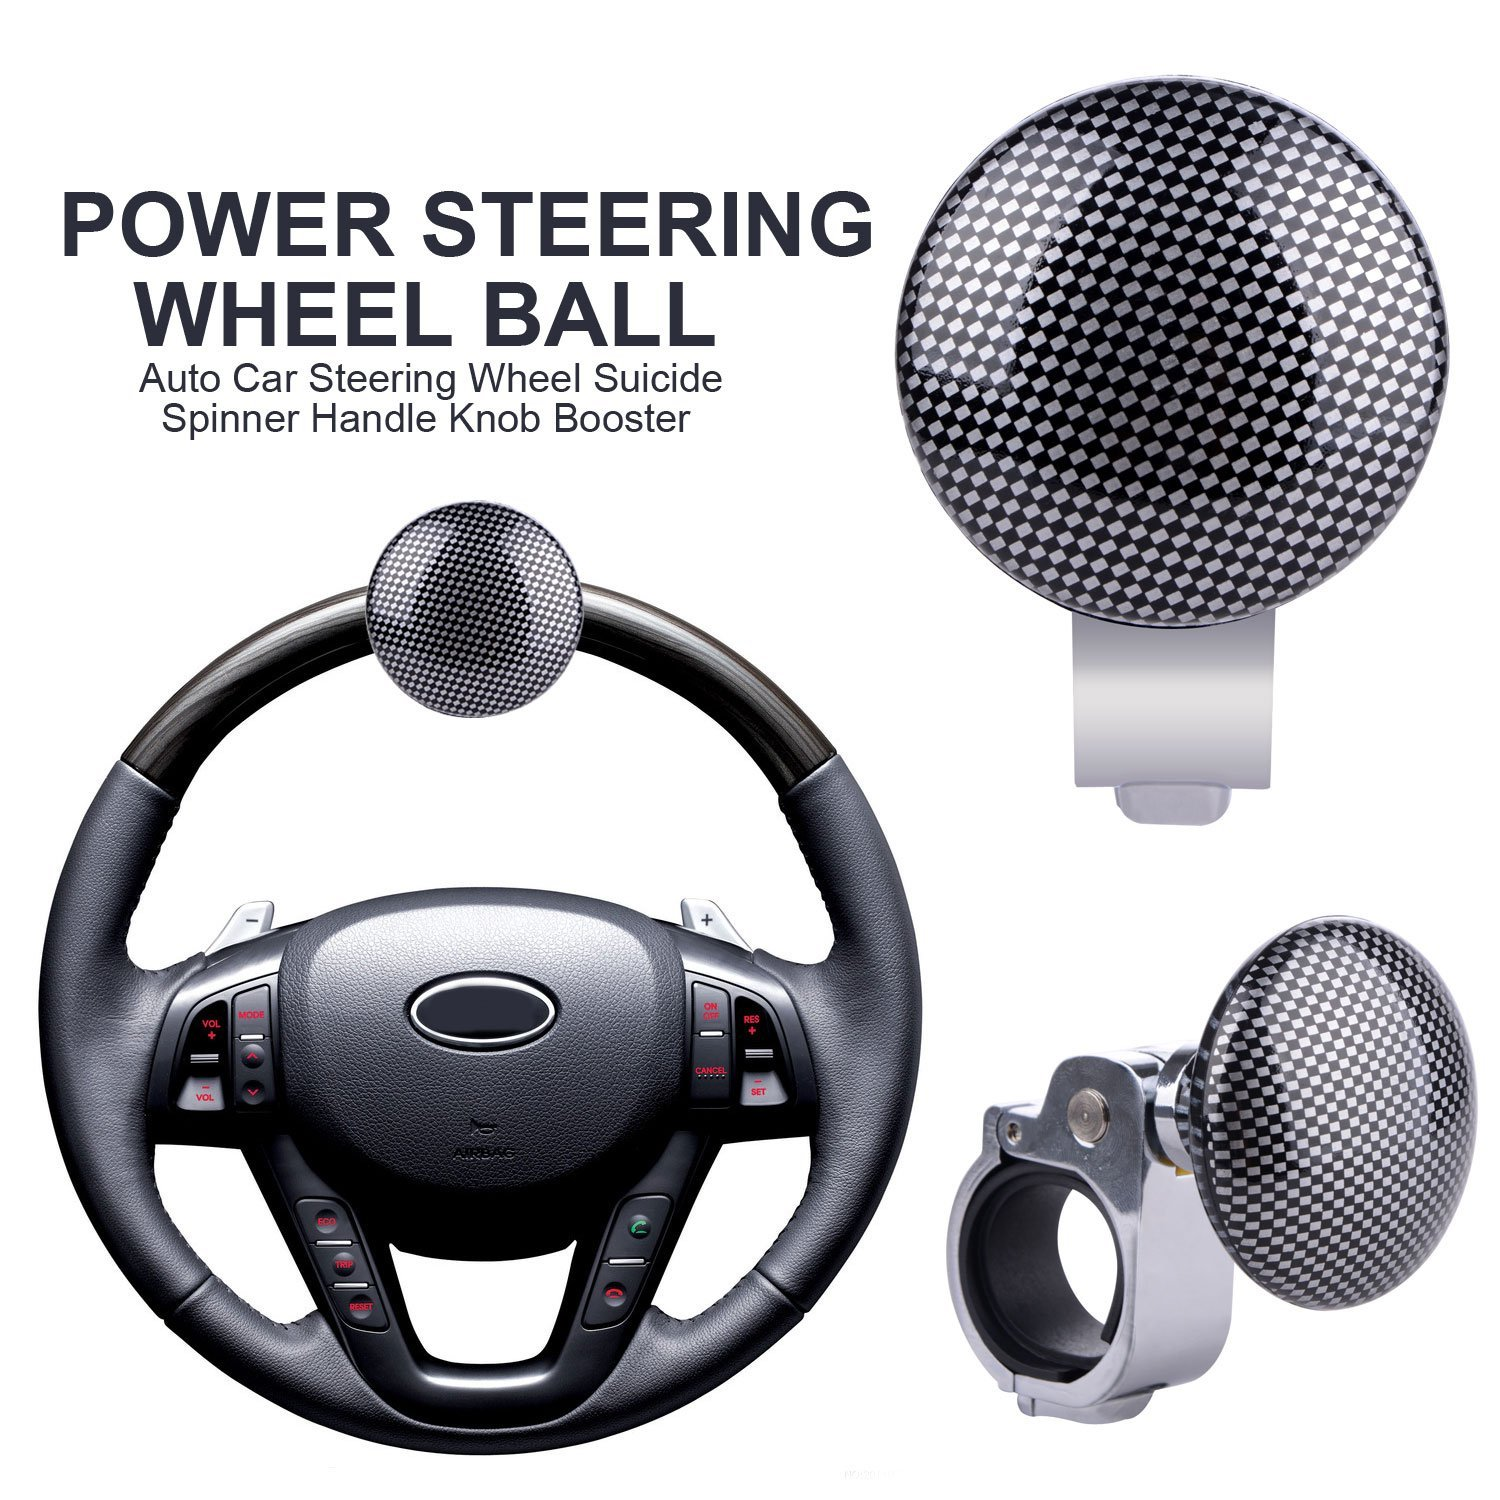 Controllers 1x Hickory Car Auto Steering Wheel Suicide Spinner Handle Knob Booster Metal 100% High Quality Materials